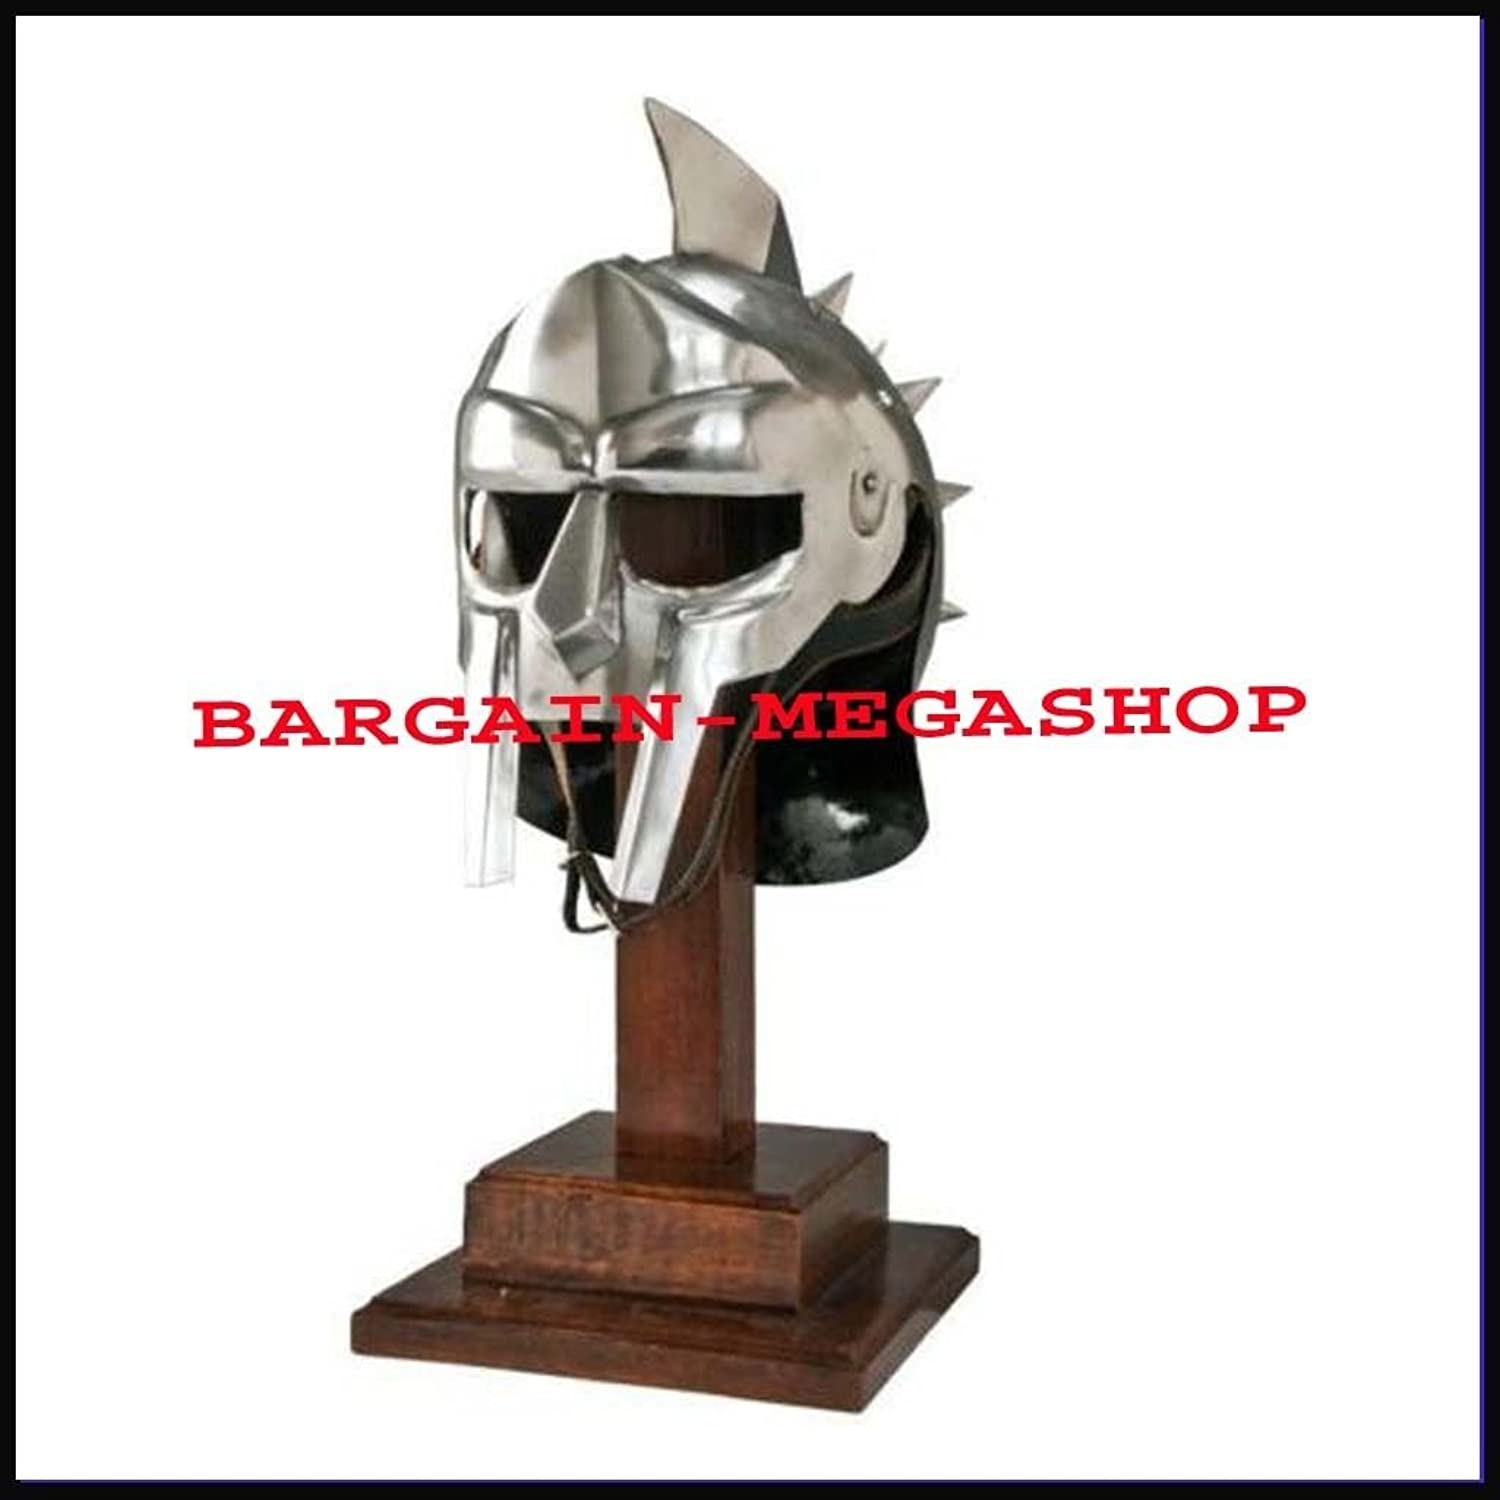 Wearable Gladiator Maximums Roman Spiked Helmet 18 Gauge with Faux Leather Liner